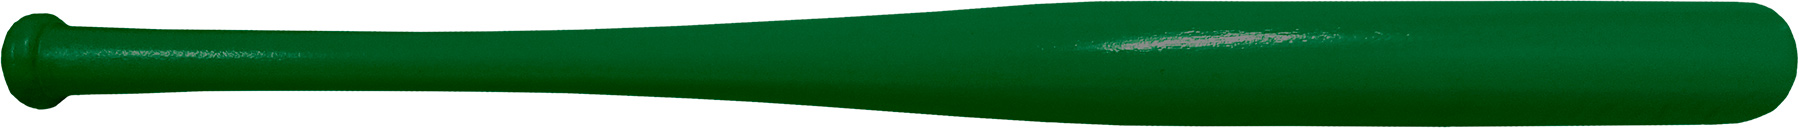 novelty green baseball bat souvenir baseball bat